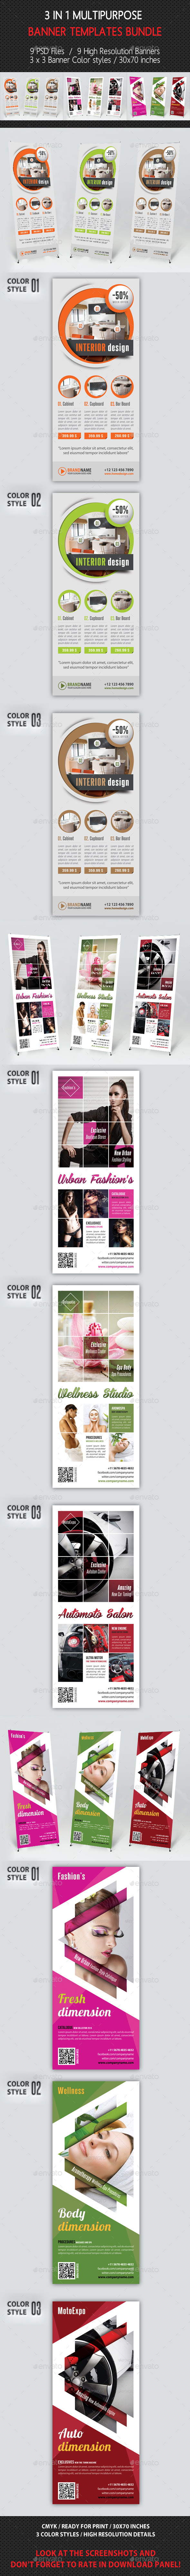 GraphicRiver 3 in 1 Multipurpose Banner Bundle 02 8842155